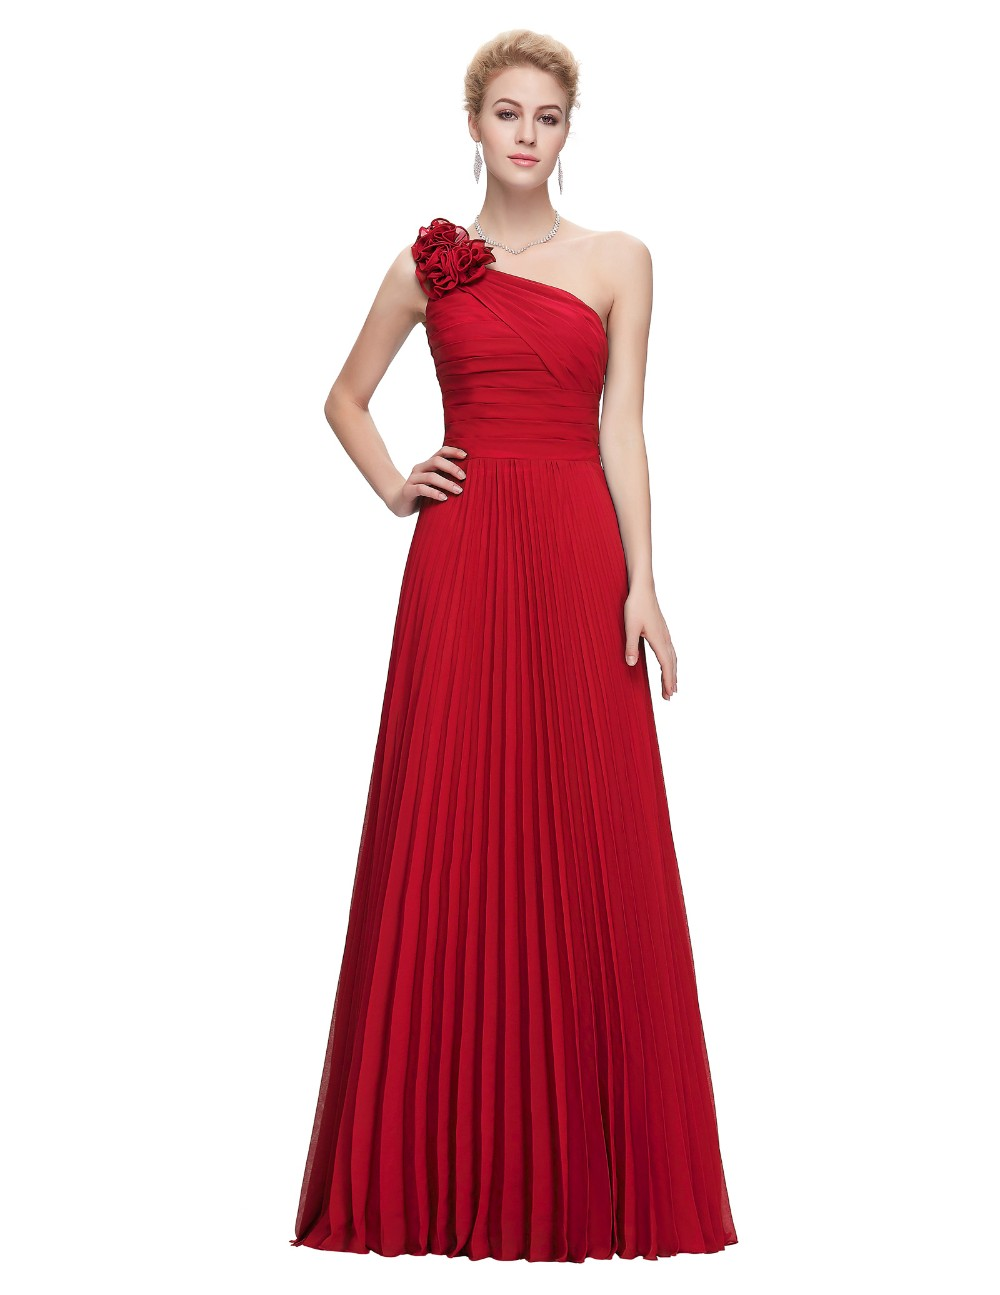 Grace Karin Chiffon Long Evening Dress One Shoulder Pleated Red Green Purple Royal Blue Formal Evening Dress Party Gowns 2018 11